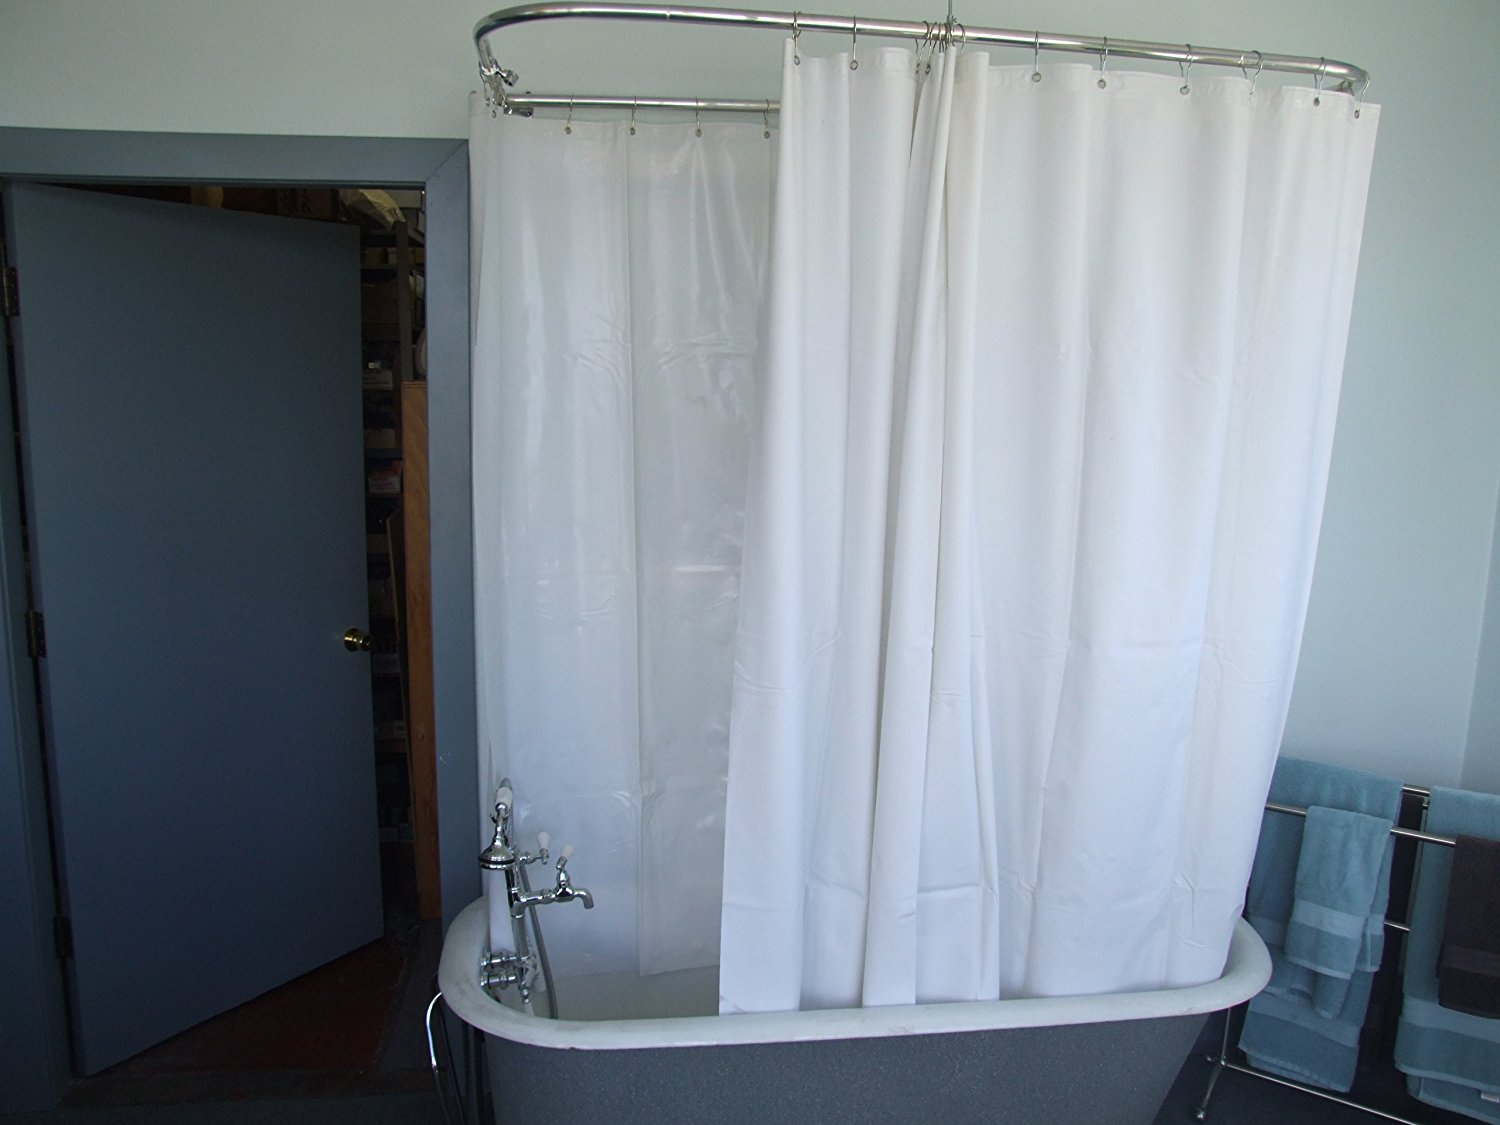 Curtain Surround Shower Curtain Clawfoot Tub Shower Curtain in size 1500 X 1125